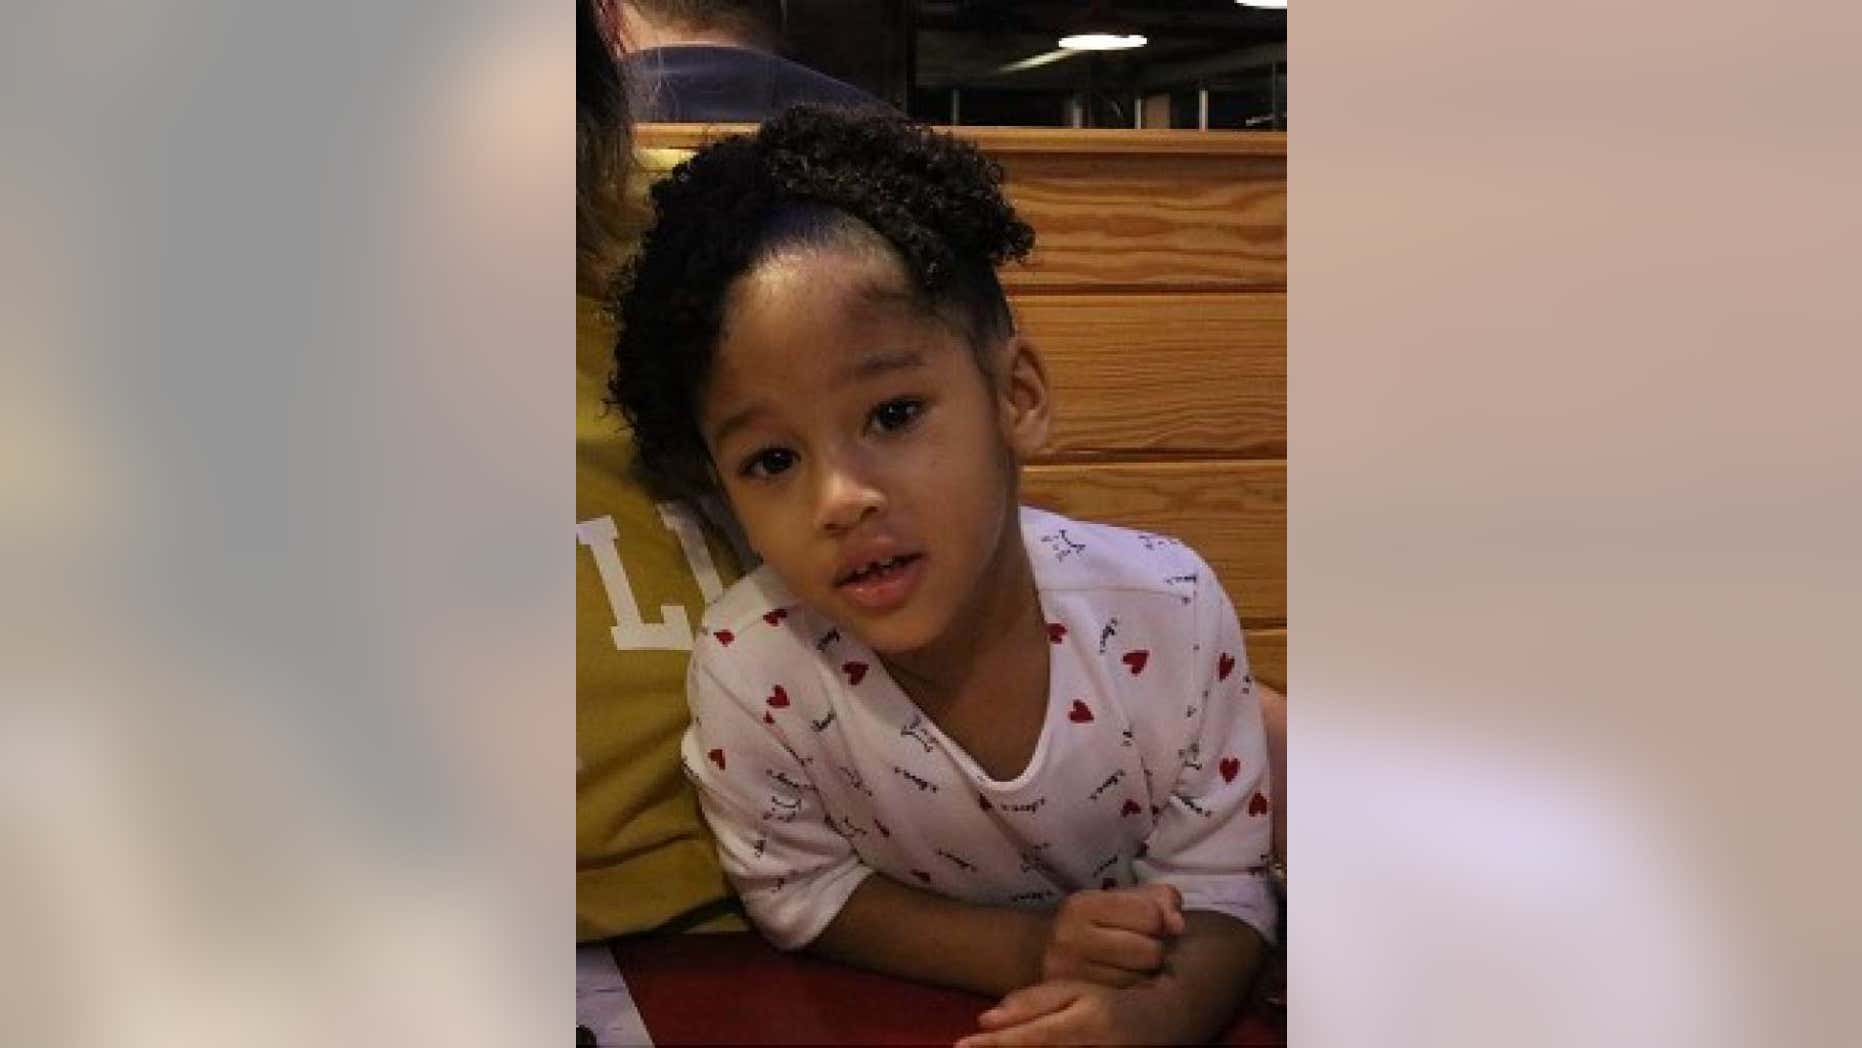 Westlake Legal Group 1024x1024 Houston girl, 5, 'abducted' by 3 men in blue pickup, recently had brain surgery fox-news/us/us-regions/southwest/texas fox-news/us/crime fox news fnc/us fnc f64c929e-5017-5554-9c9e-43fa60fdad96 article